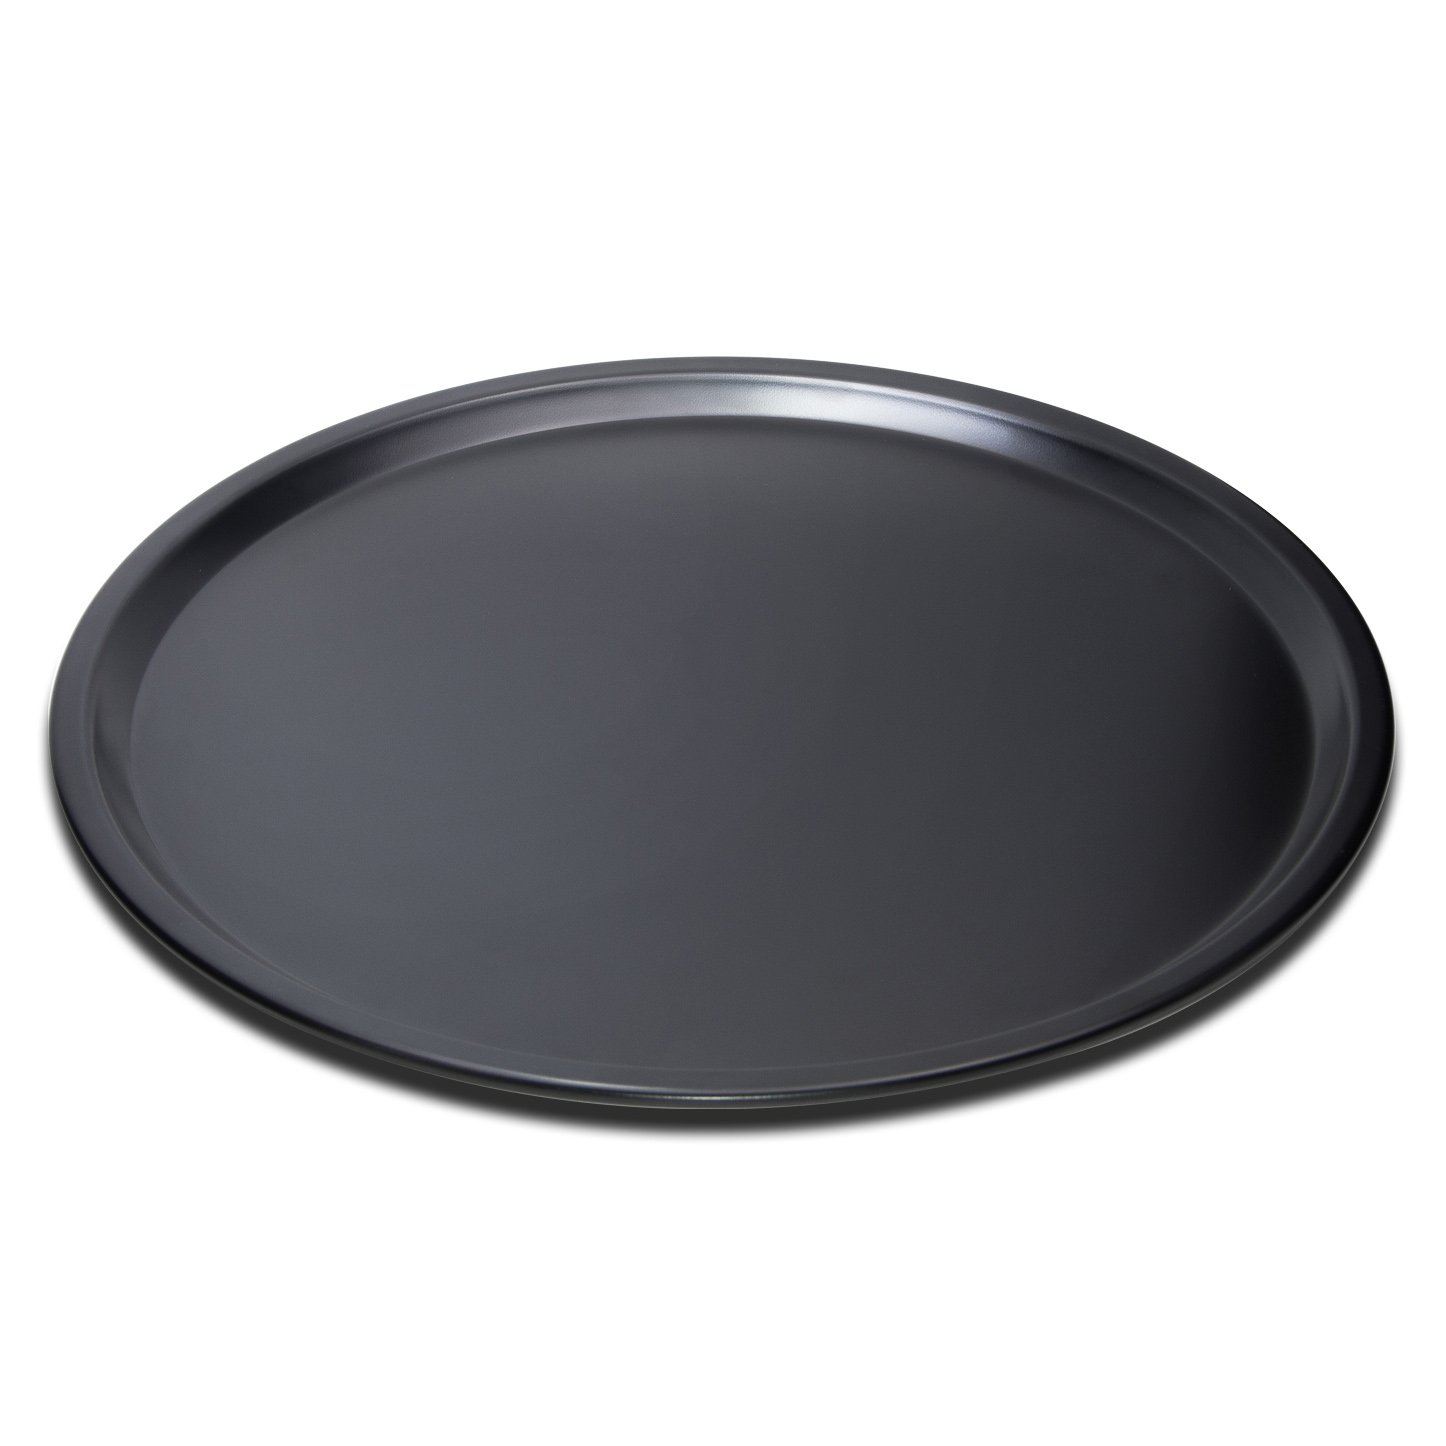 EDOBLUE Nonstick Pizza Pan Carbon Steel Pizza Tray Pie Pans (13inch)